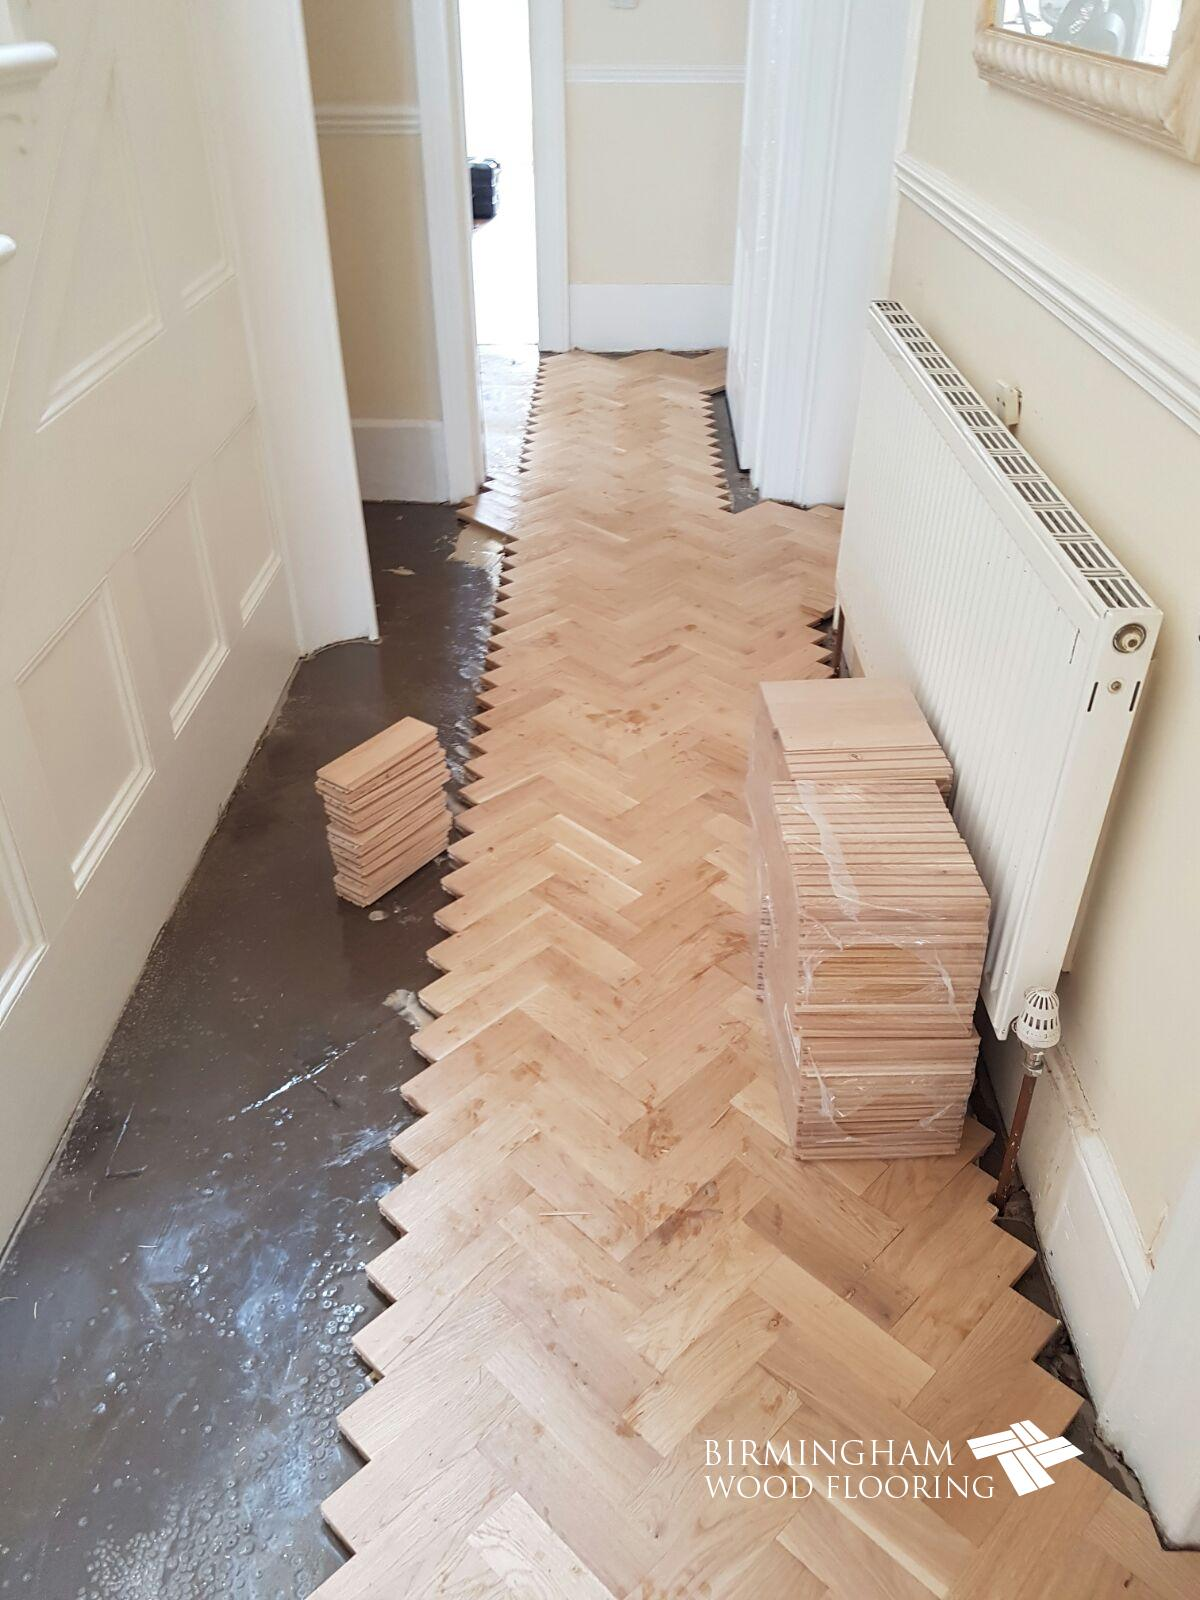 Installation-of-parquet-blocks-either-side-of-header-line-Edgbaston-Birmingham